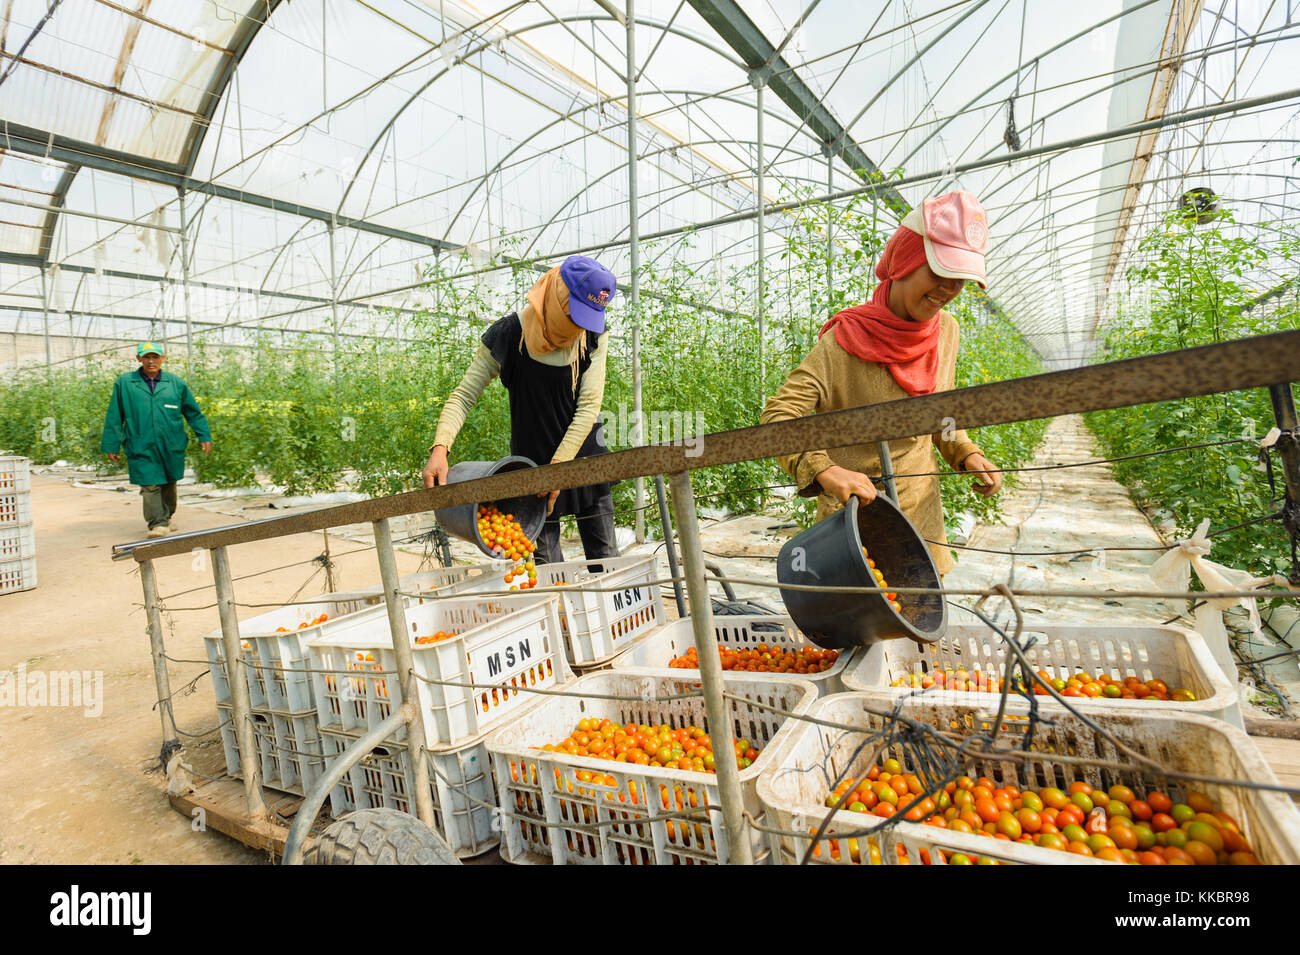 Young girls working on a greenhouse - Stock Image